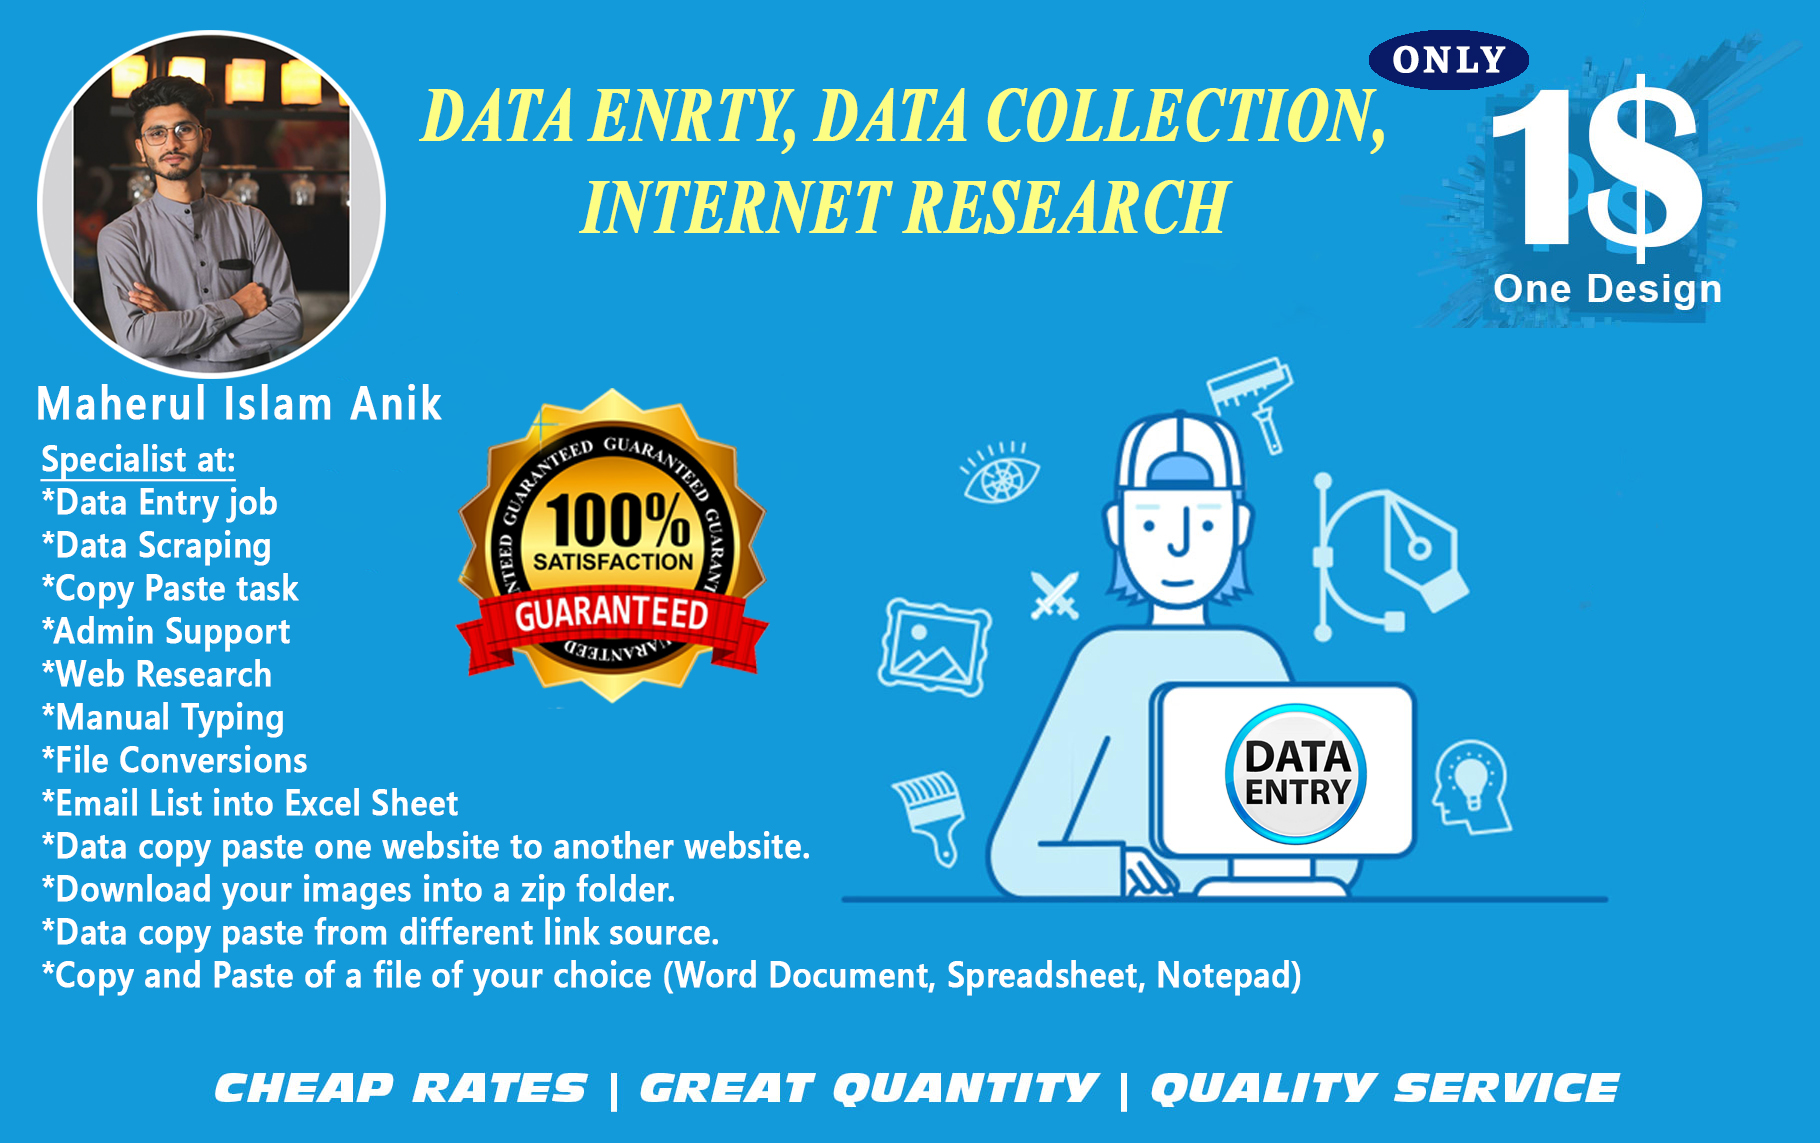 any kind of data entry or internet research for you site or sheet ETC.